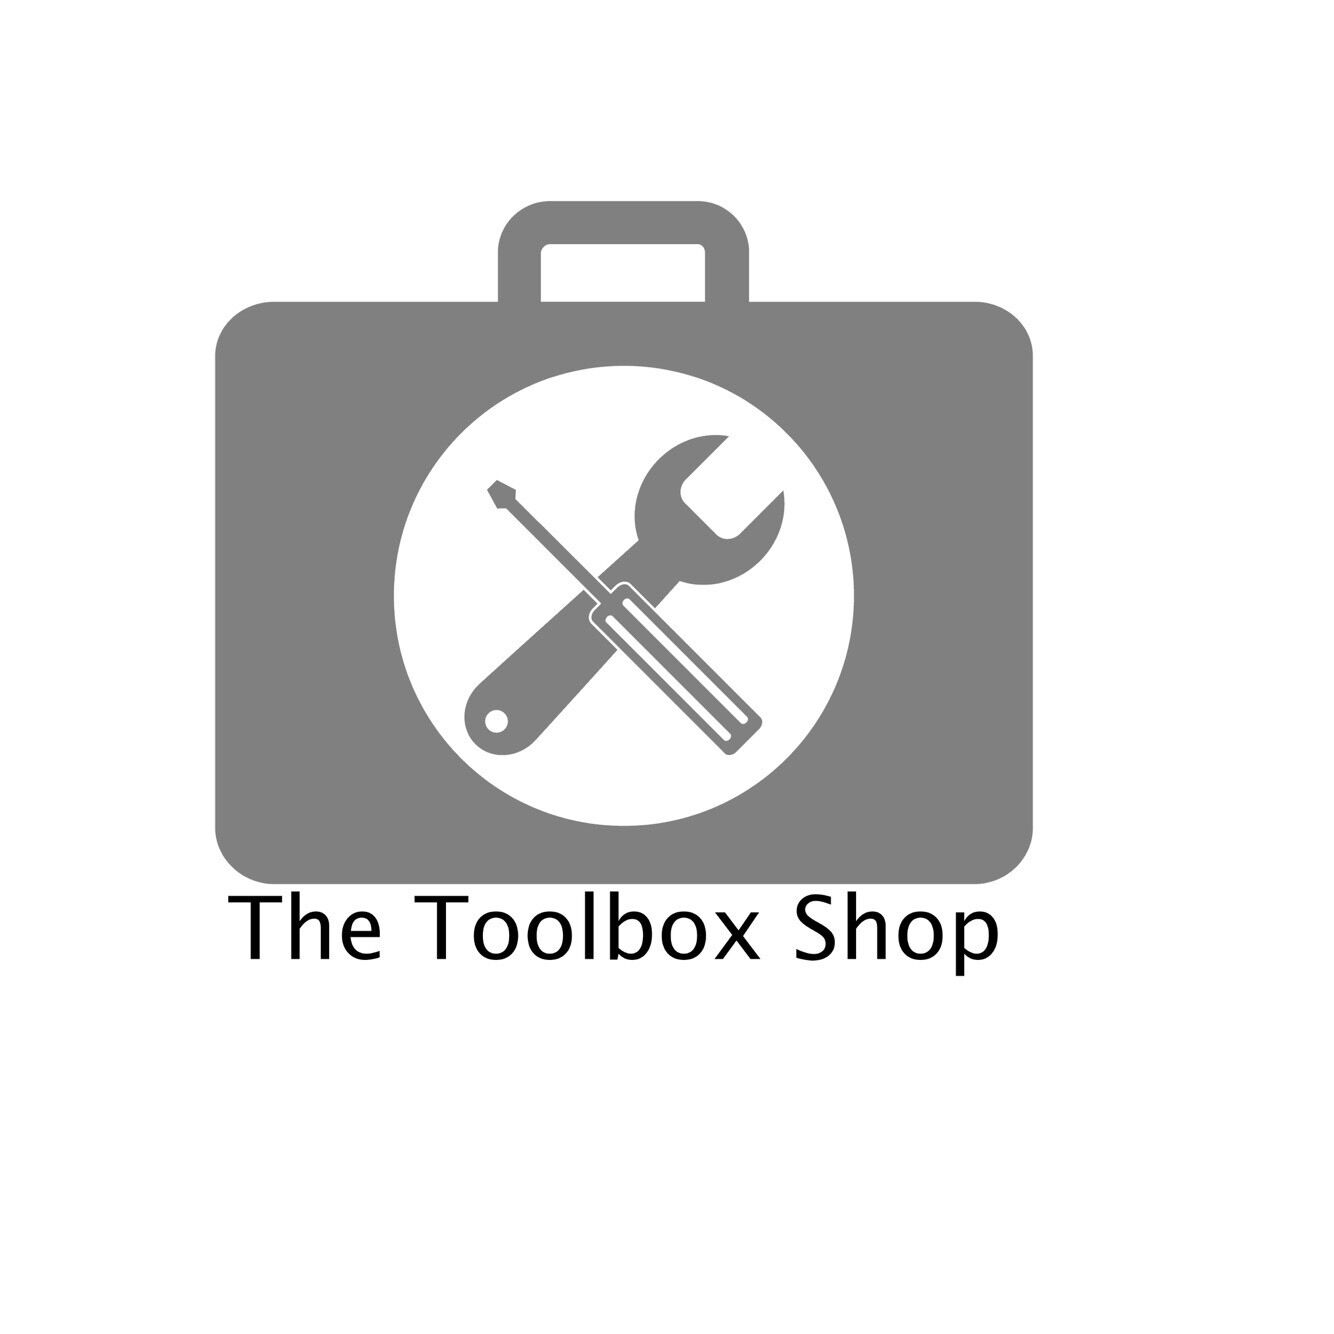 The Toolbox Shop